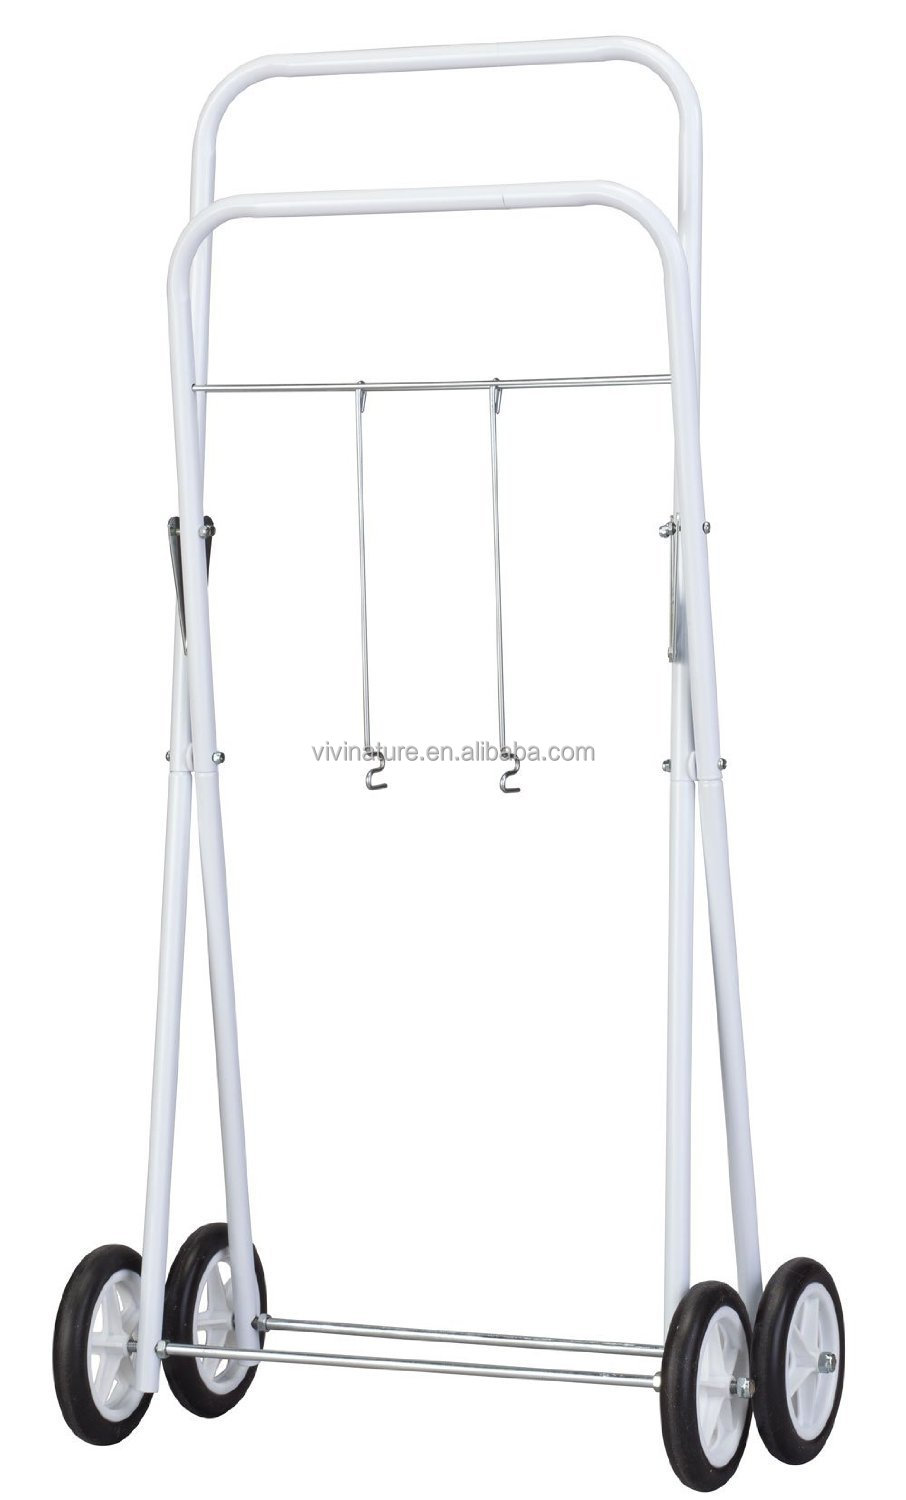 Laundry Clothes Basket Trolley Removable Basket Laundry On